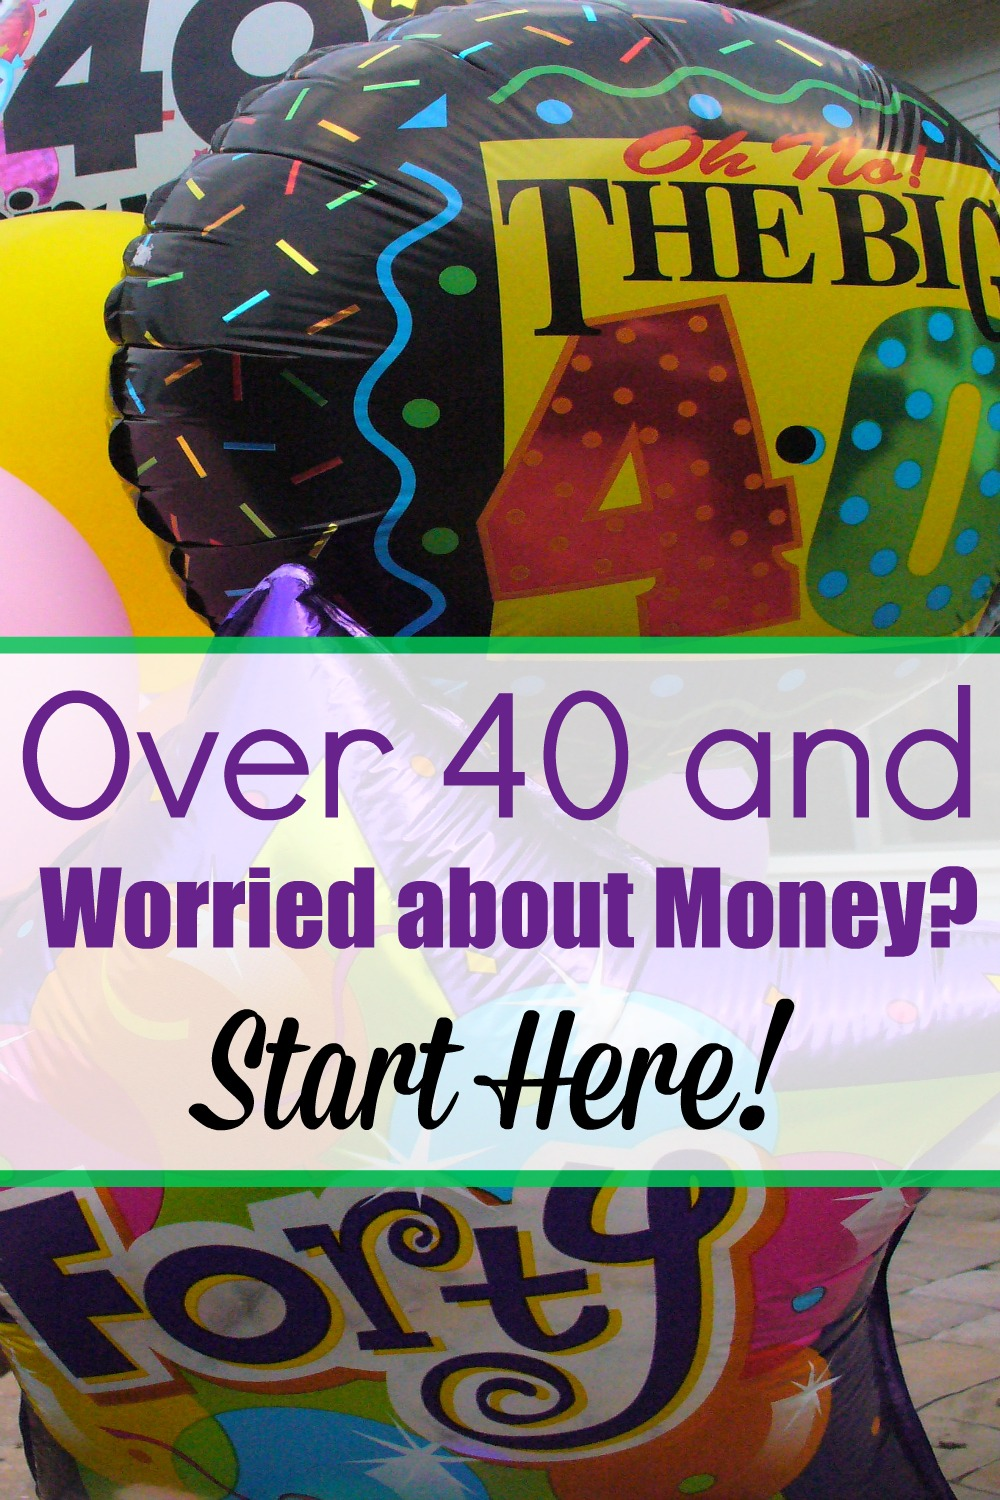 Over 40 and worried about money Start here